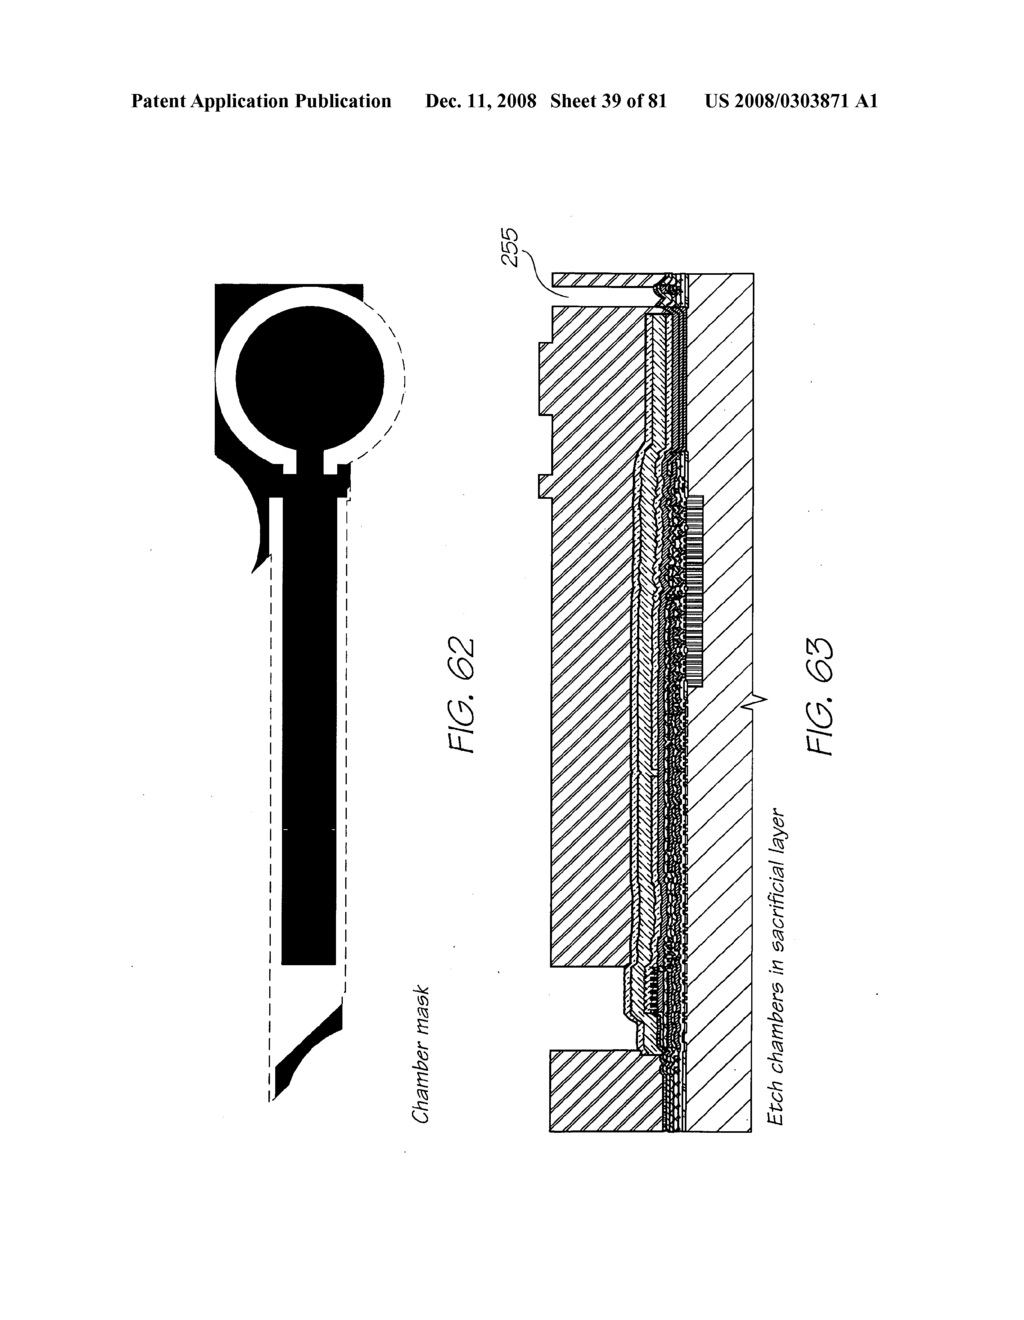 NOZZLE ASSEMBLY FOR AN INKJET PRINTER FOR EJECTING A LOW VOLUME DROPLET - diagram, schematic, and image 40